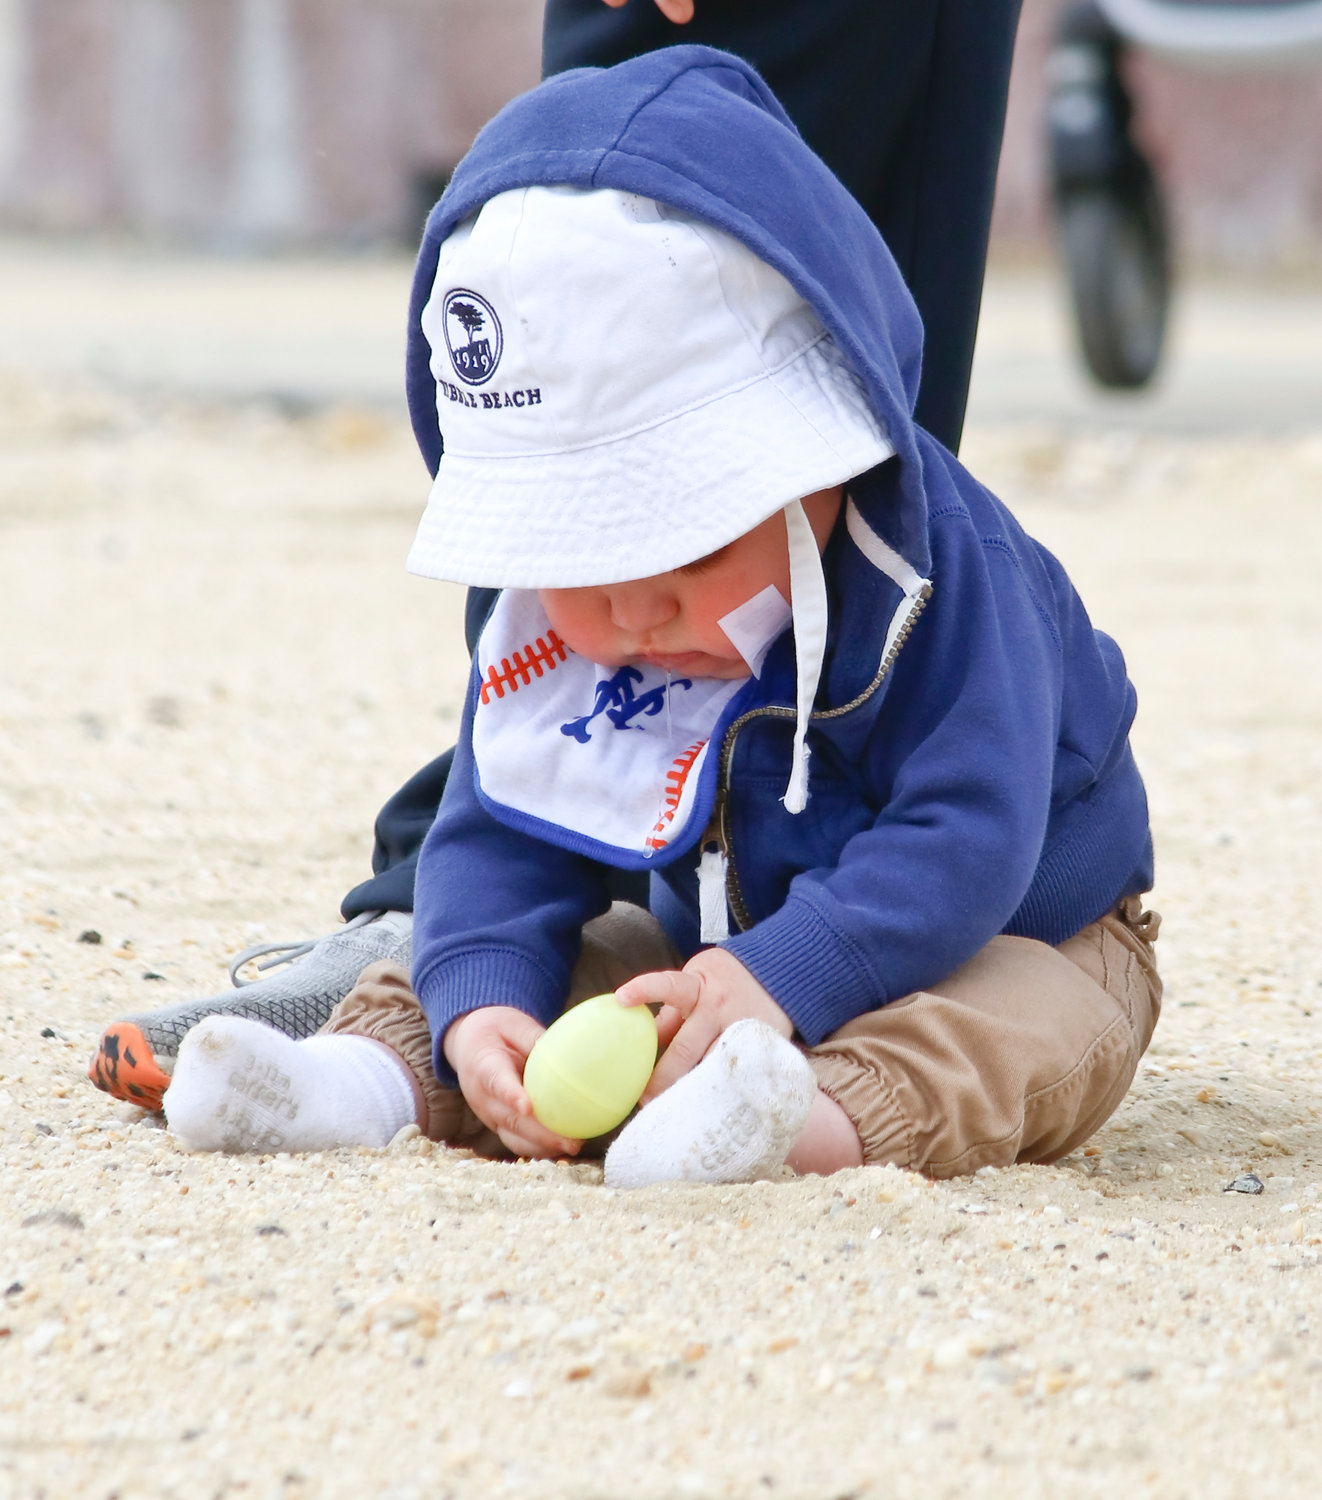 Seven-month-old Ryan O'Shea wasn't quite sure what to do with the plastic egg he found.